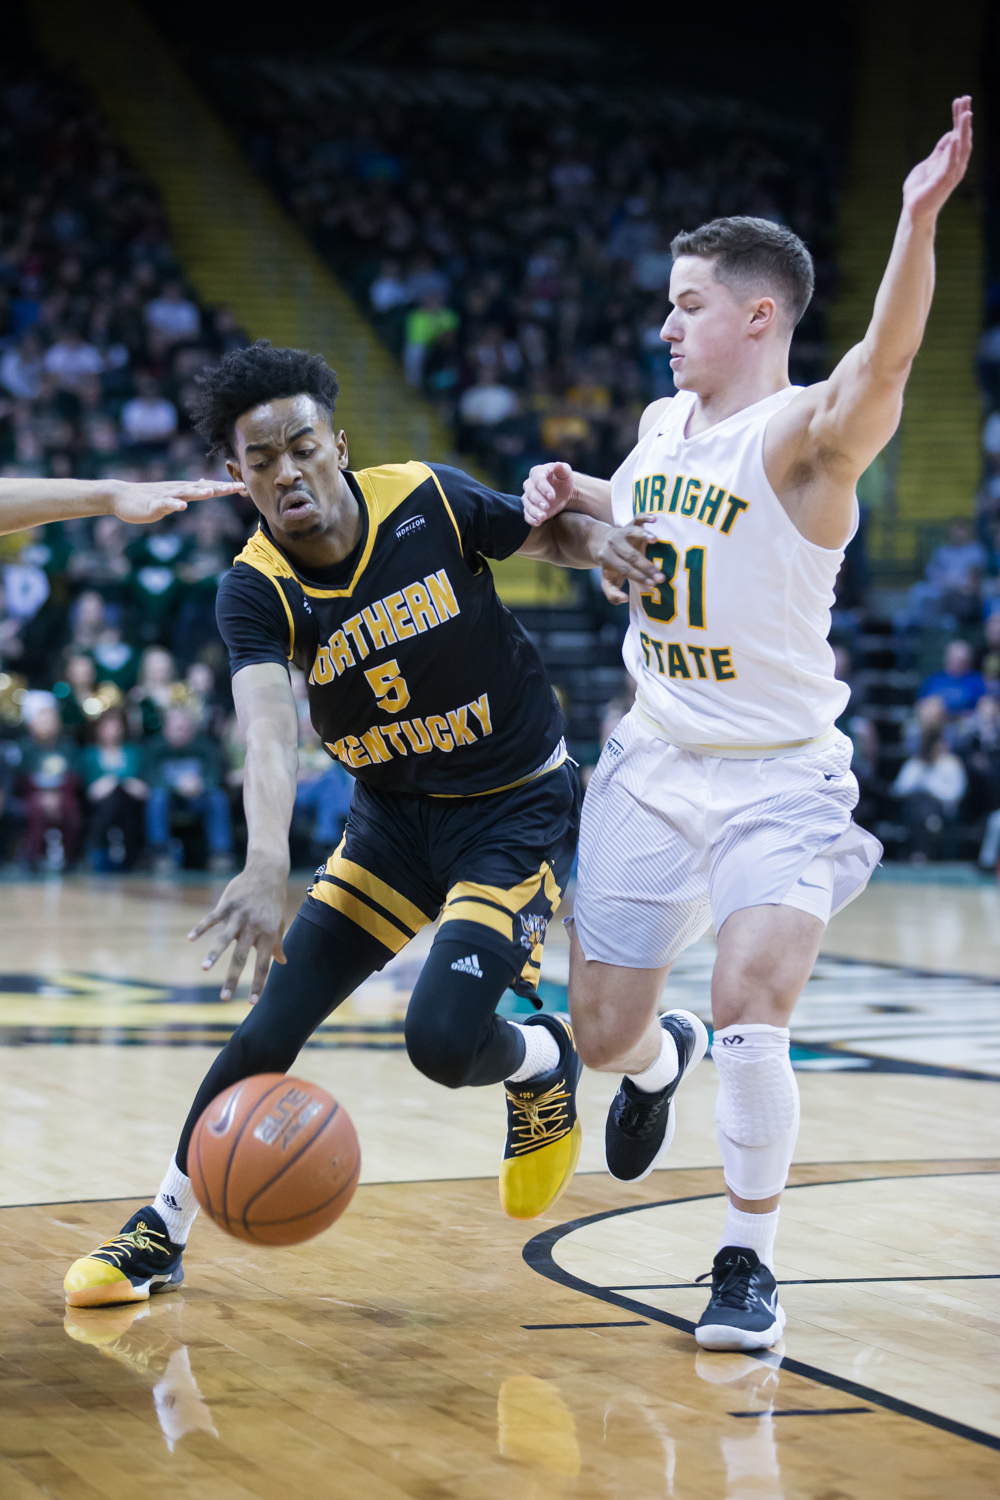 Jalen+Tate+%285%29+drives+toward+the+basket+during+the+game+against+Wright+State.